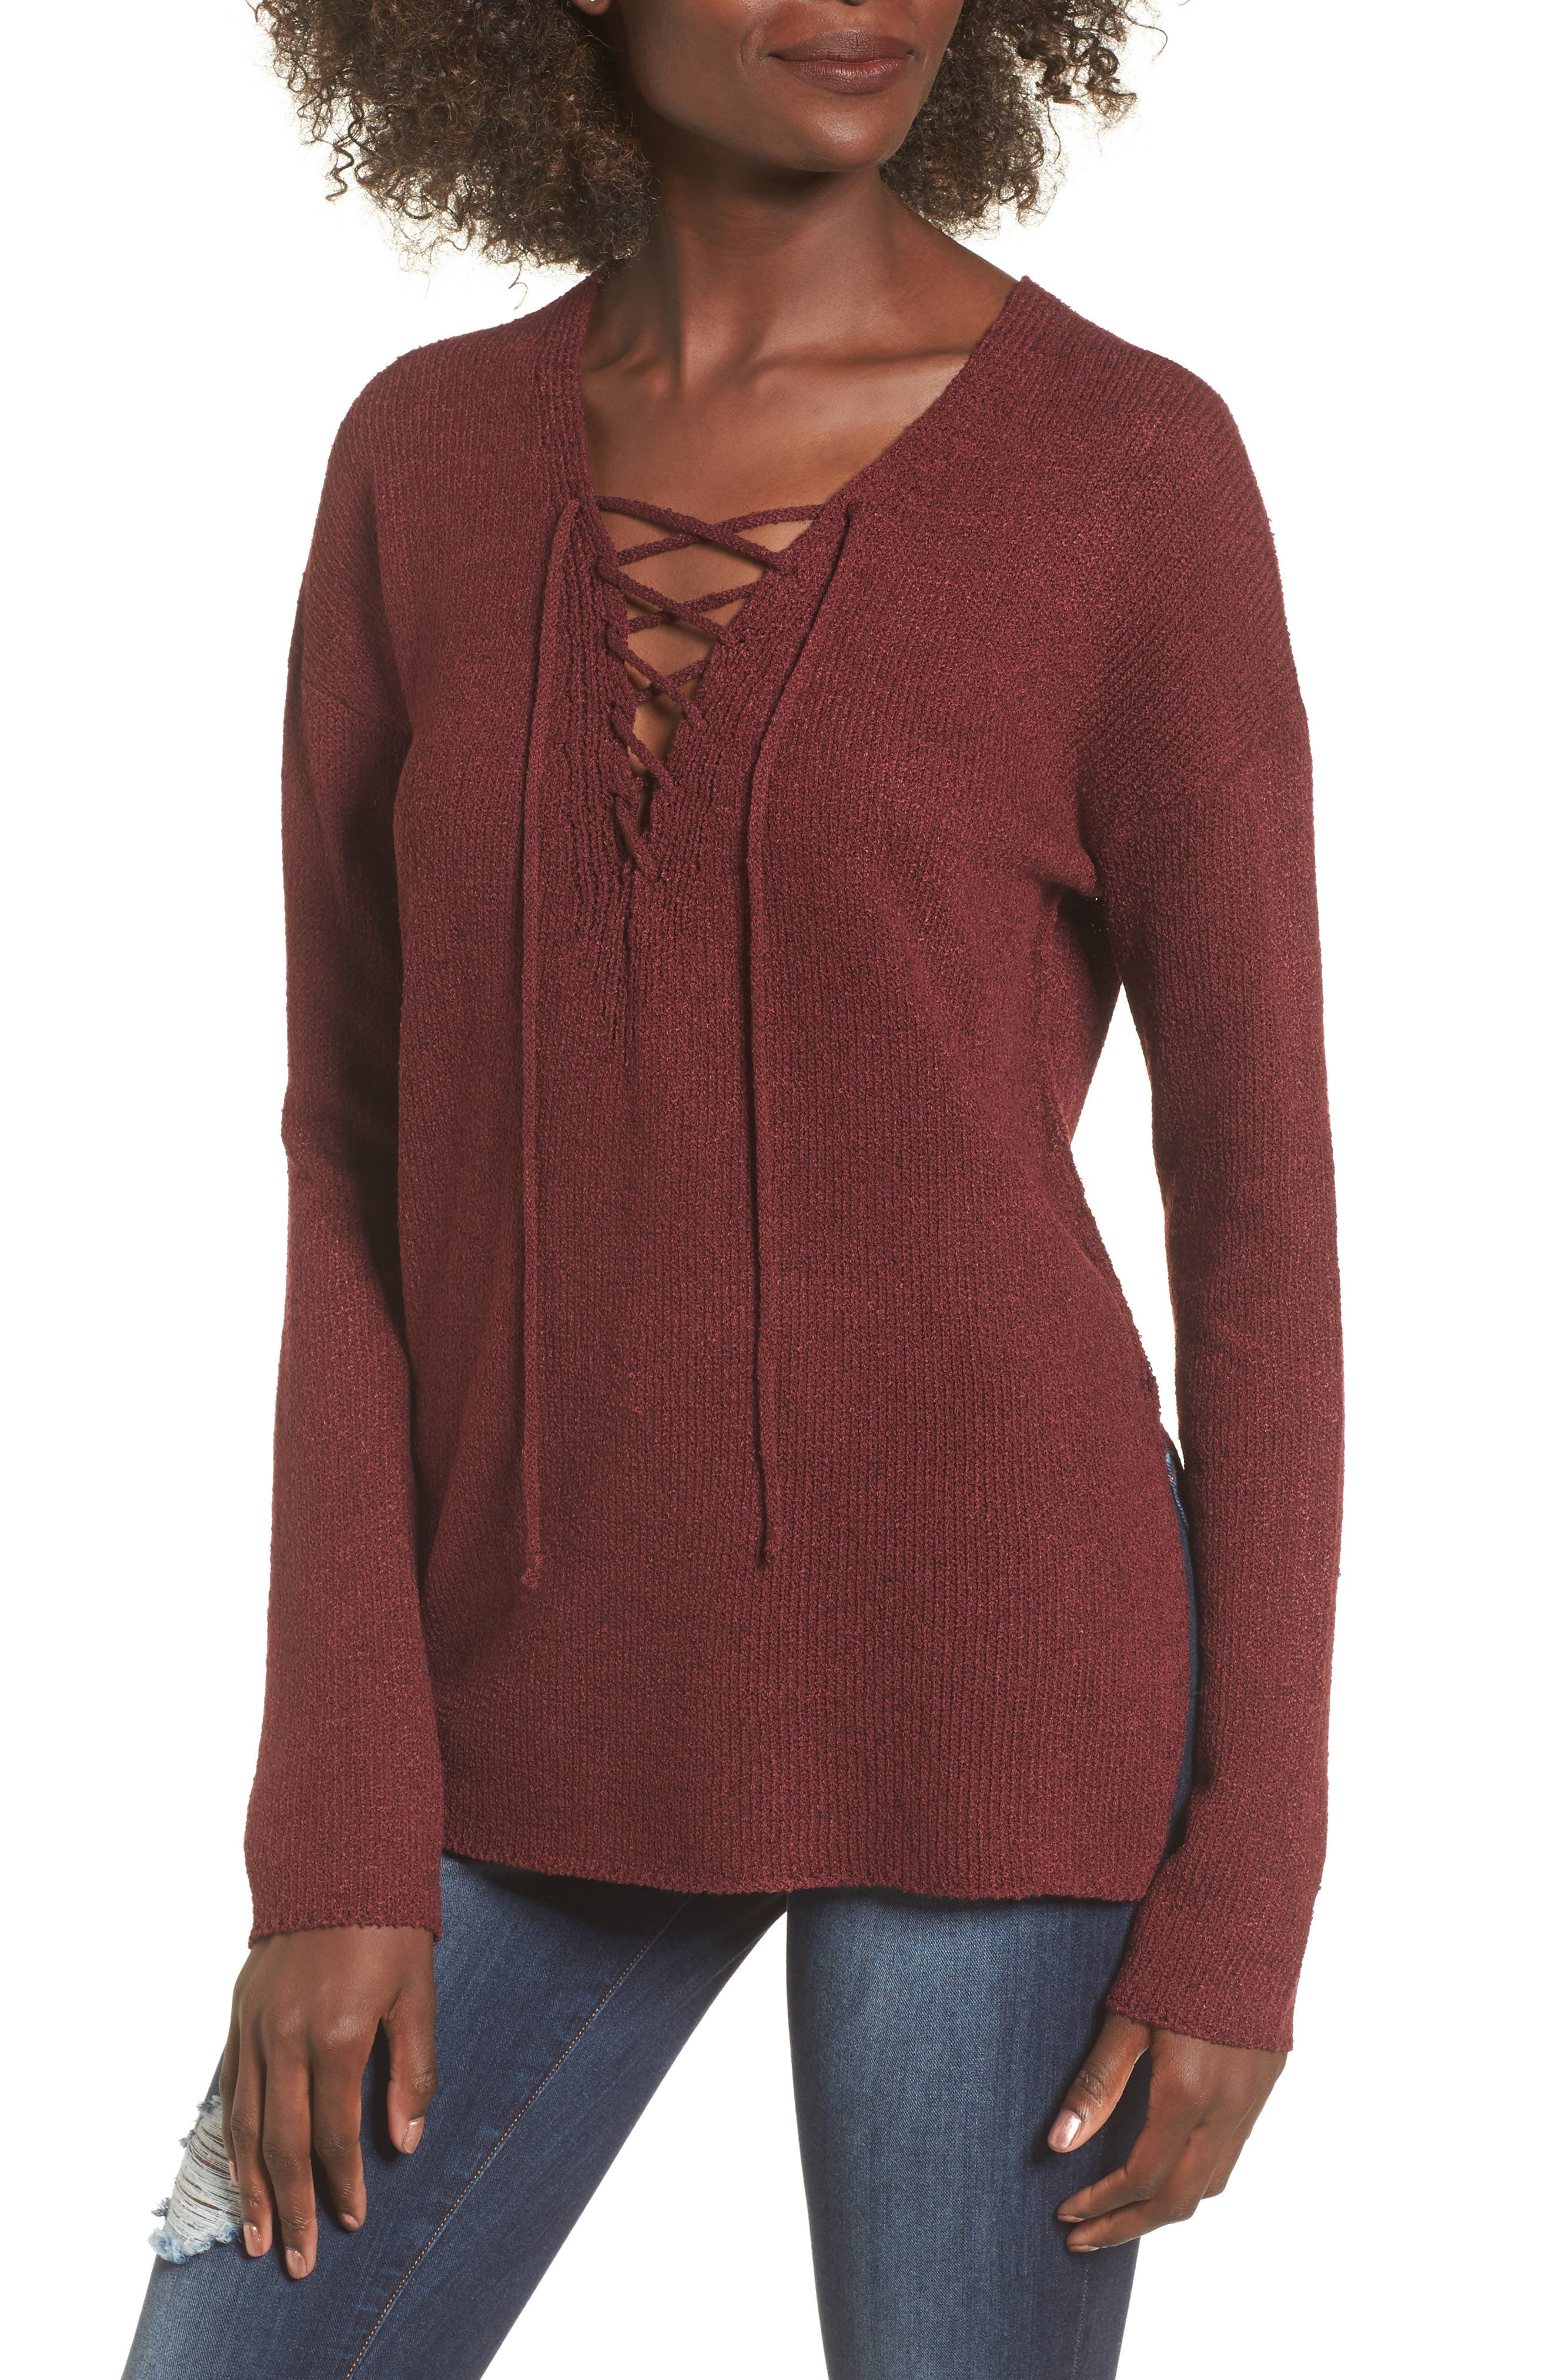 Main Image - ASTR Lace-Up Sweater